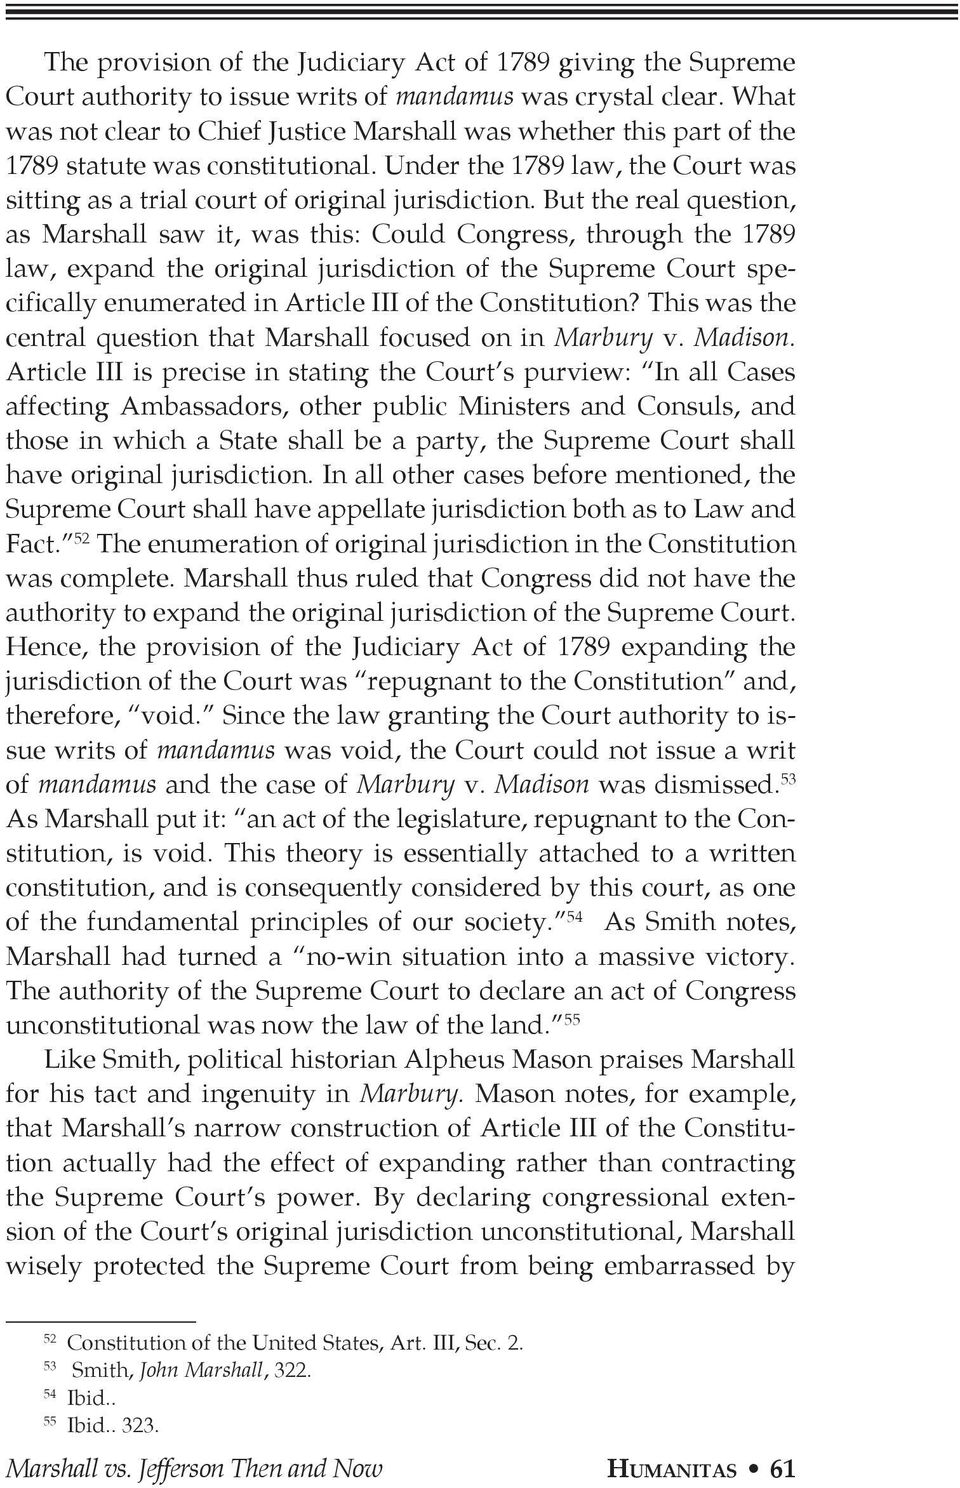 But the real question, as Marshall saw it, was this: Could Congress, through the 1789 law, expand the original jurisdiction of the Supreme Court specifically enumerated in Article III of the